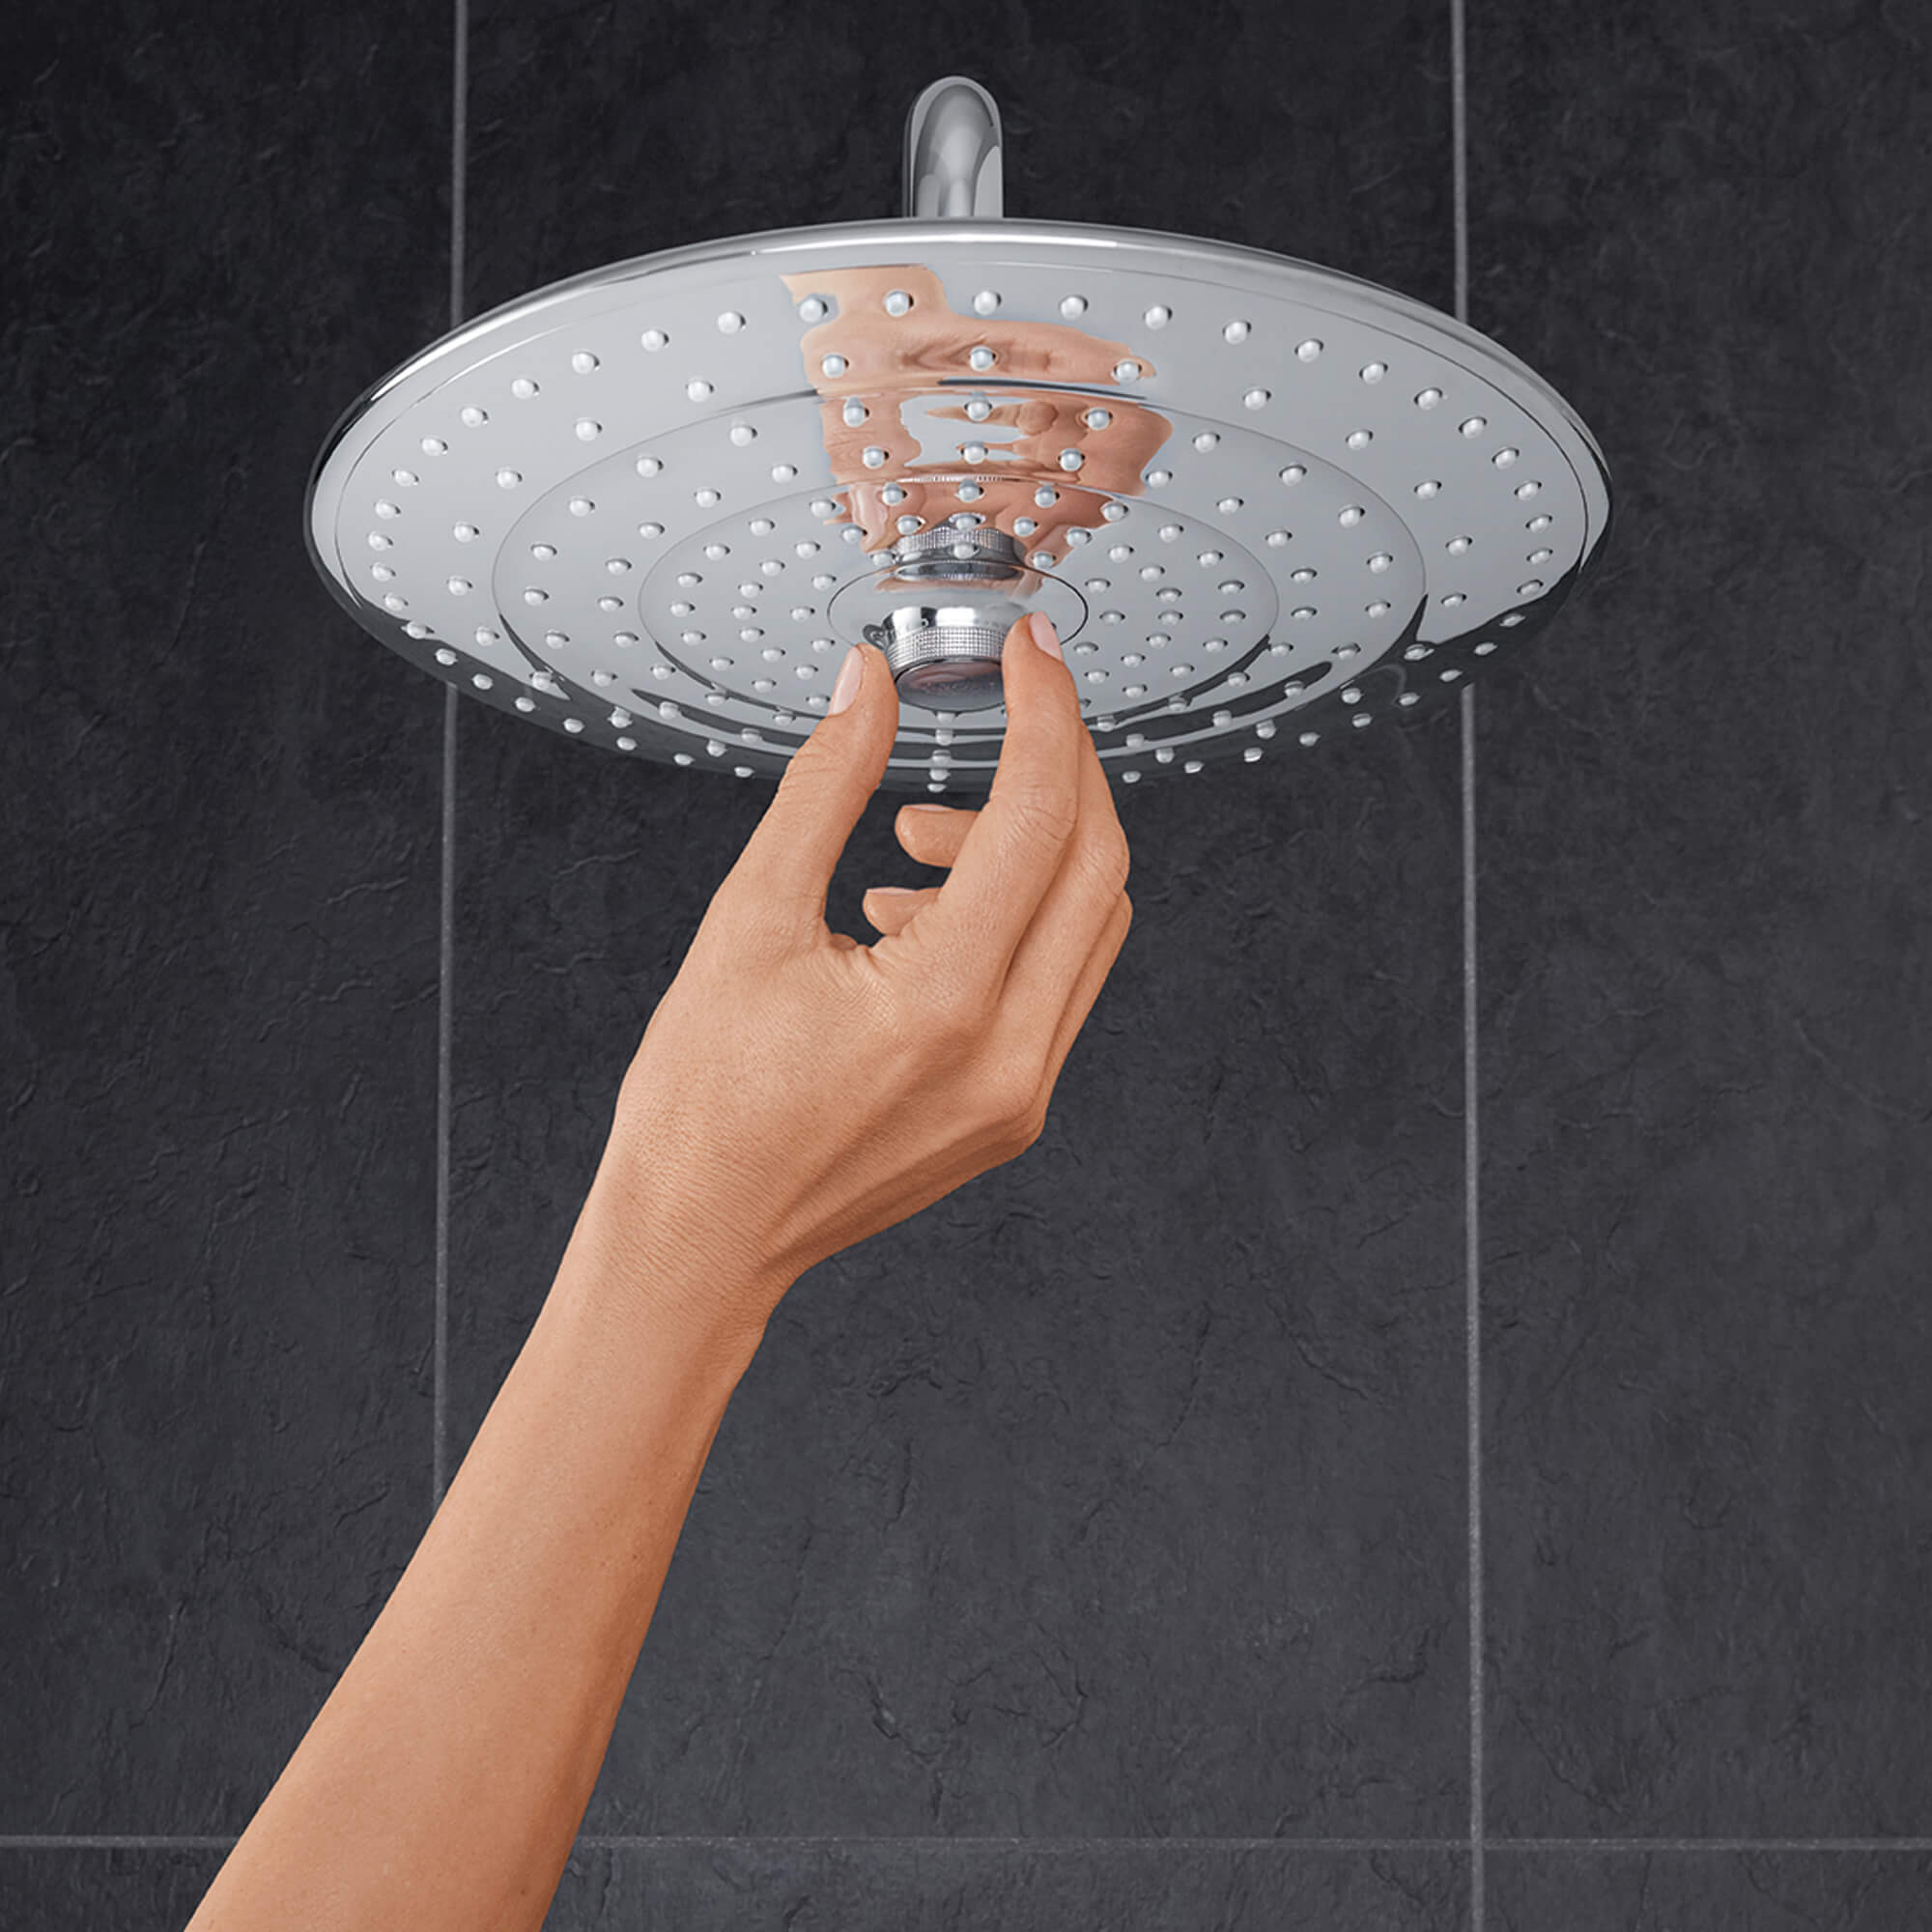 Hand adjusting centerpiece of Euphoria shower head